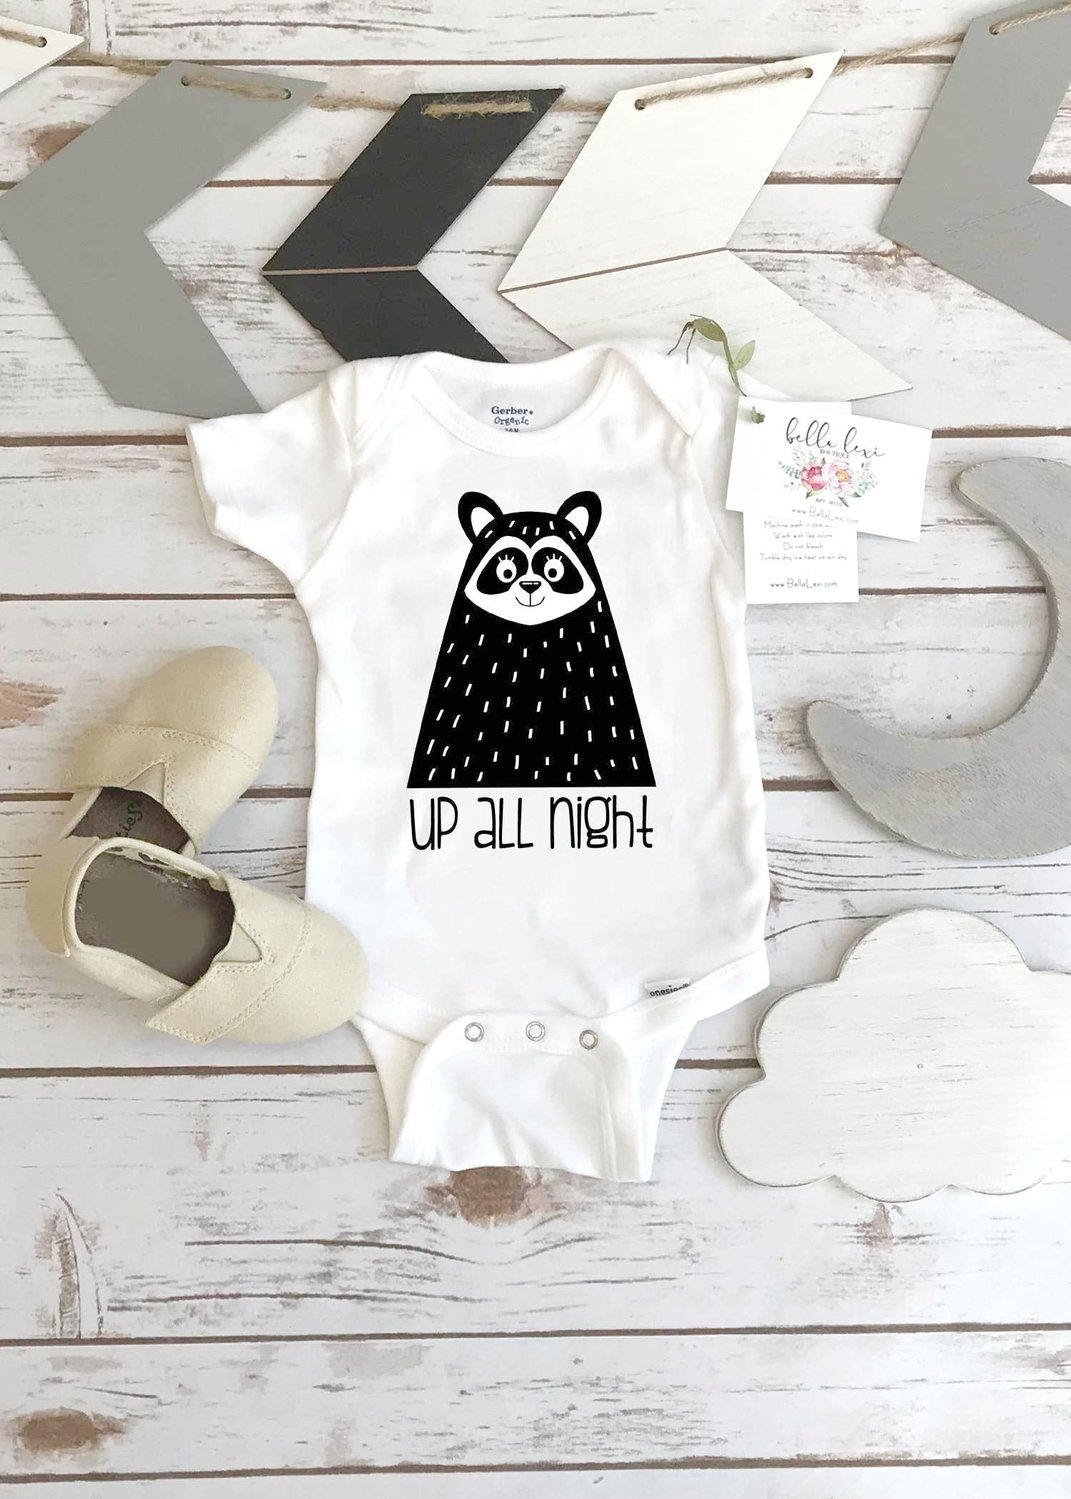 Monochrome Onesie®, UP ALL NIGHT, Black and White Onesie, Monochrome Nursery, Baby Shower Gift